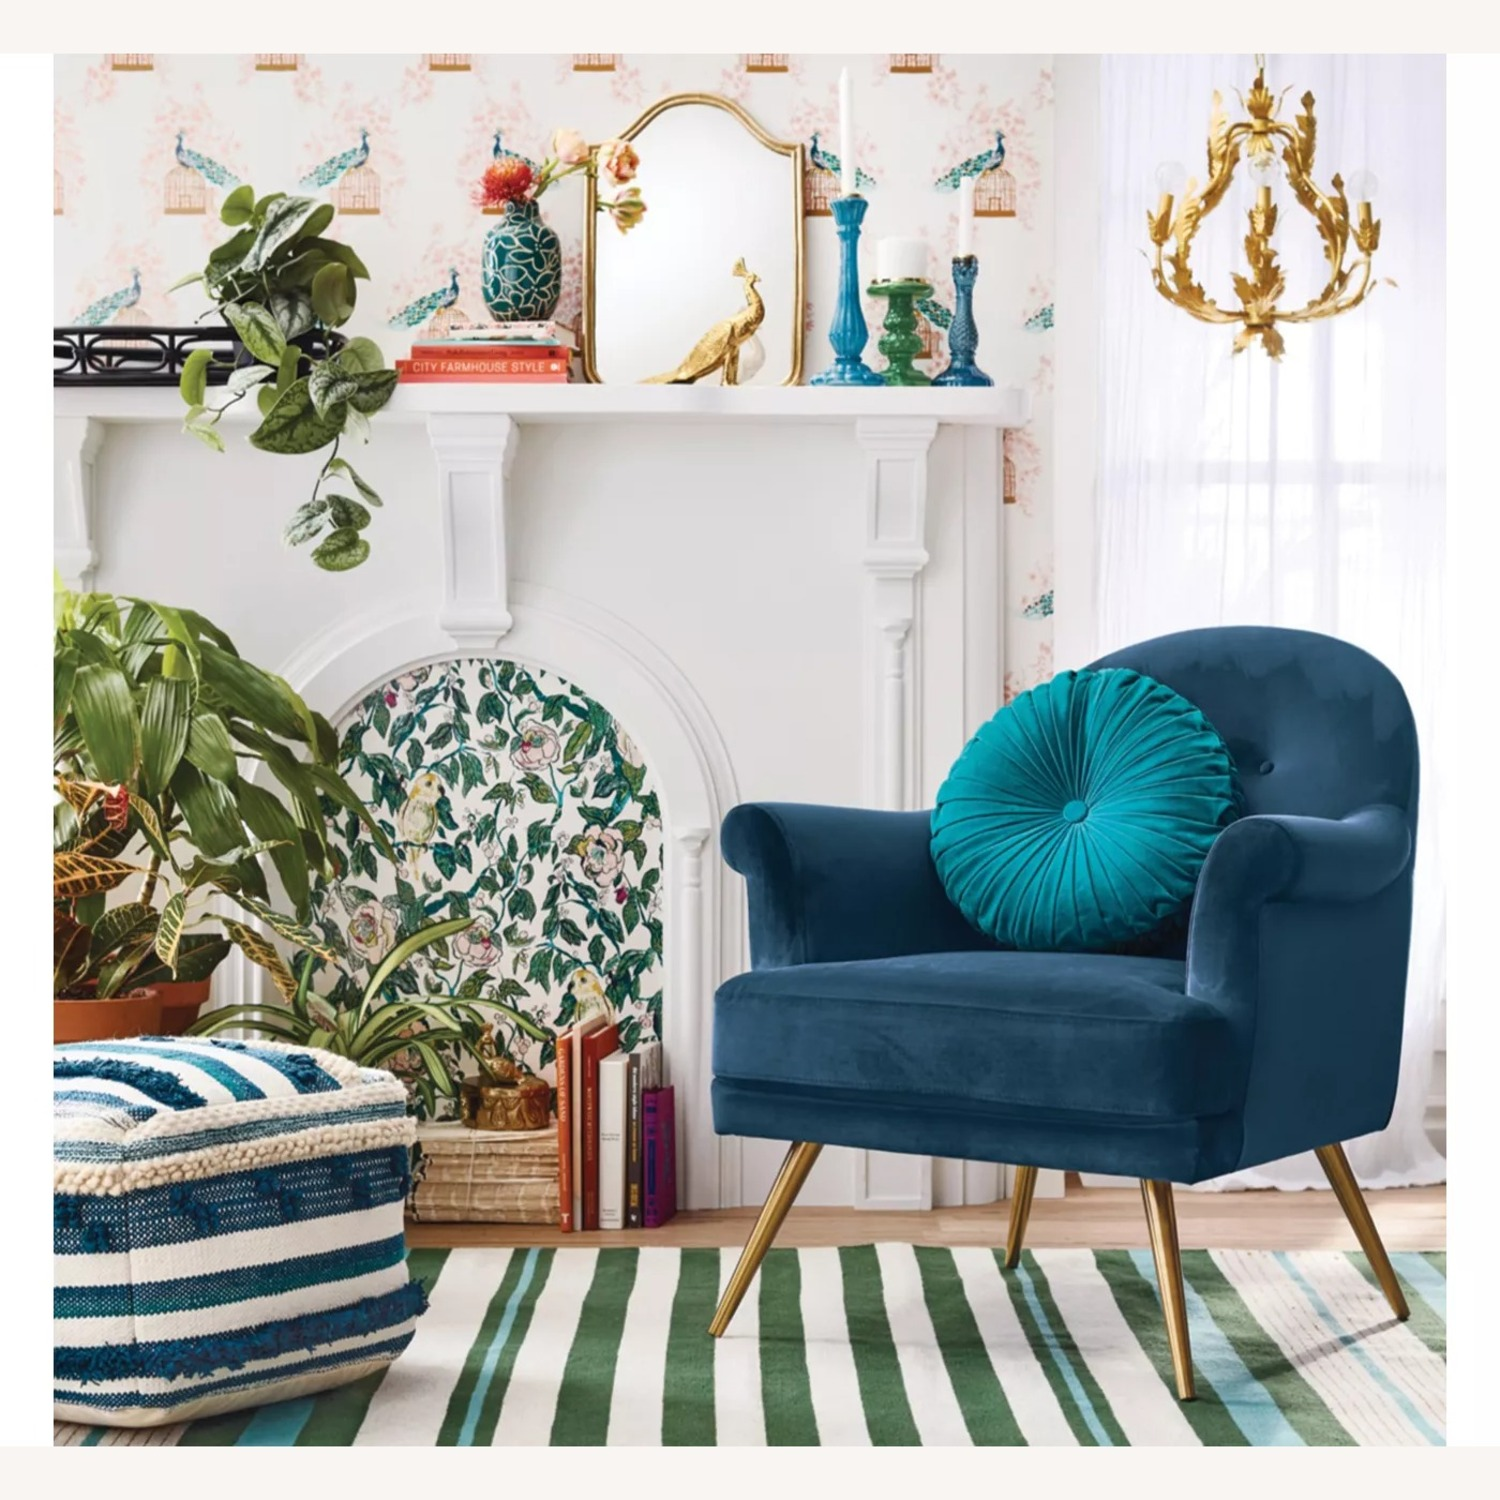 Target Teal Green Striped Woven Rug 7 x 10 - image-0